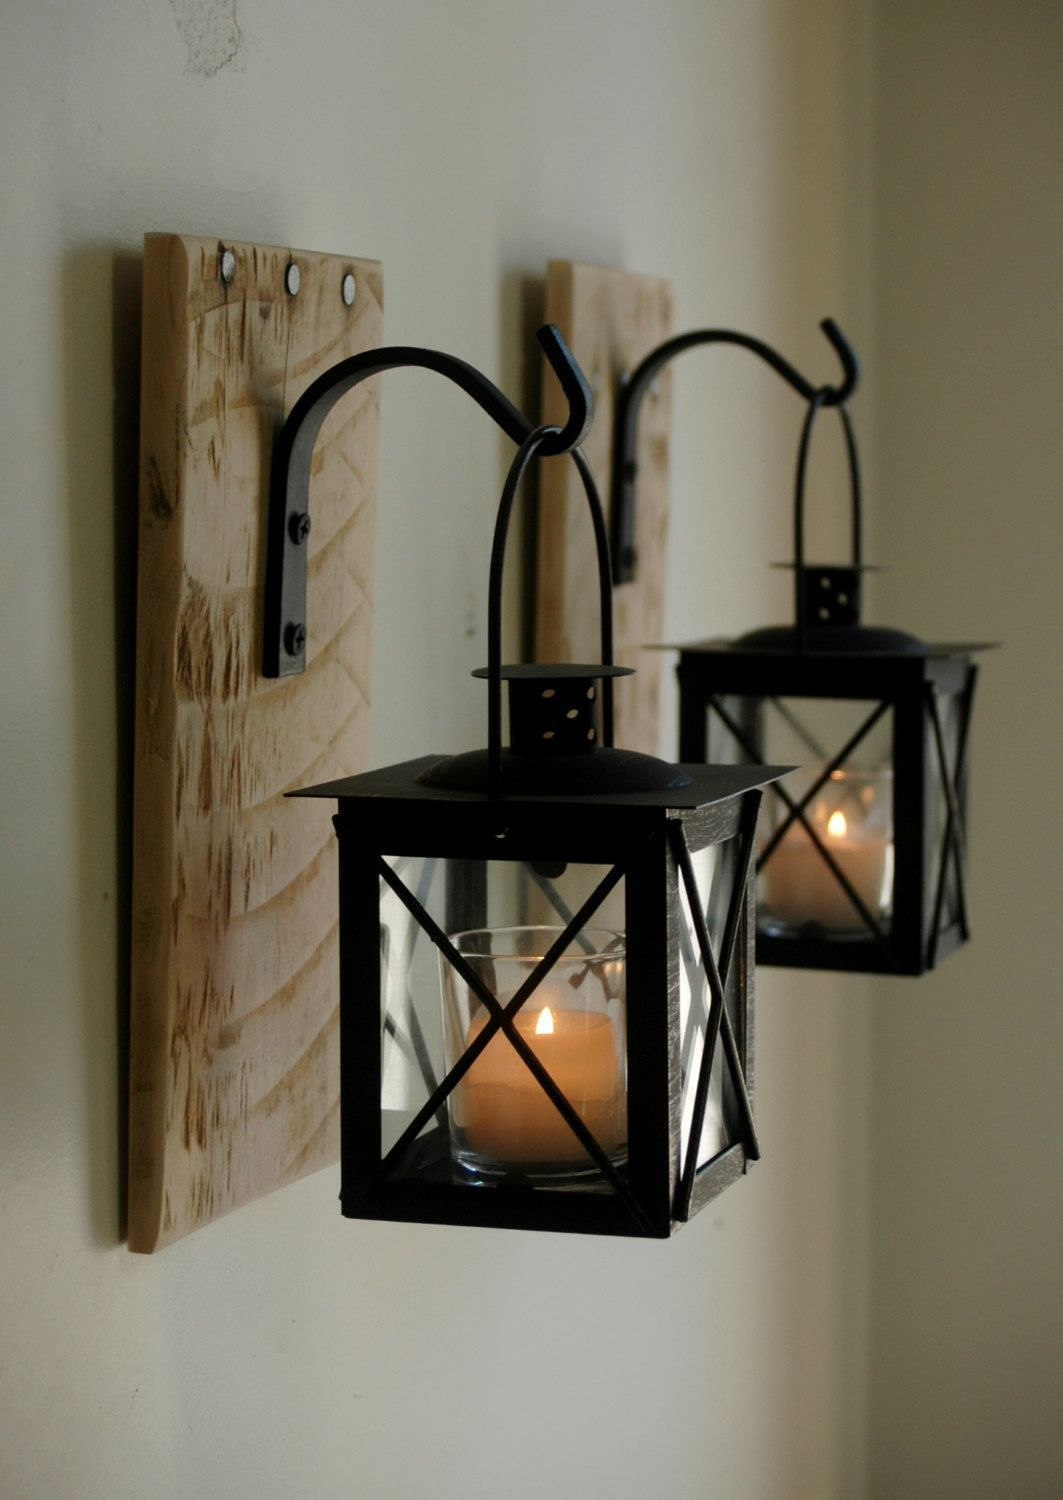 Lantern pair with wrought iron hooks on by Cool wall signs